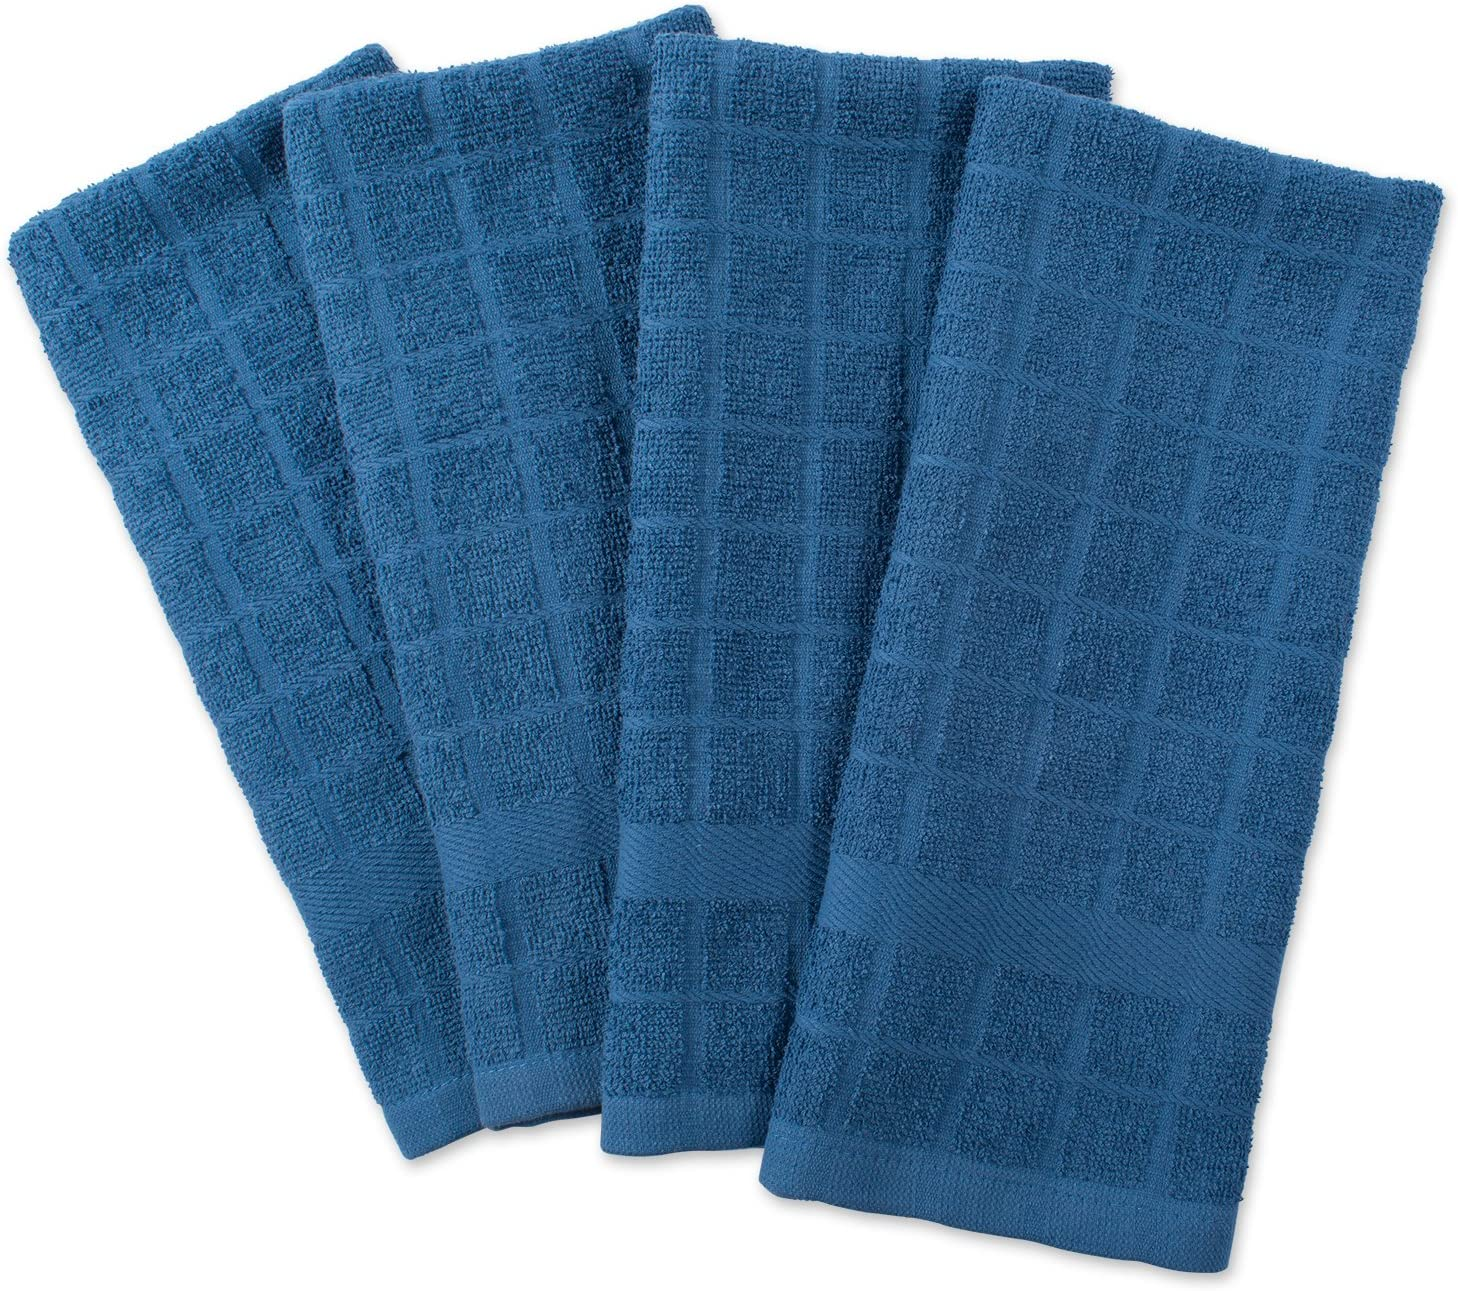 "DII Cotton Terry Windowpane Dish Towels, 16 x 26"" Set of 4, Machine Washable and Ultra Absorbent Kitchen Bar Towels-Solid Blue"